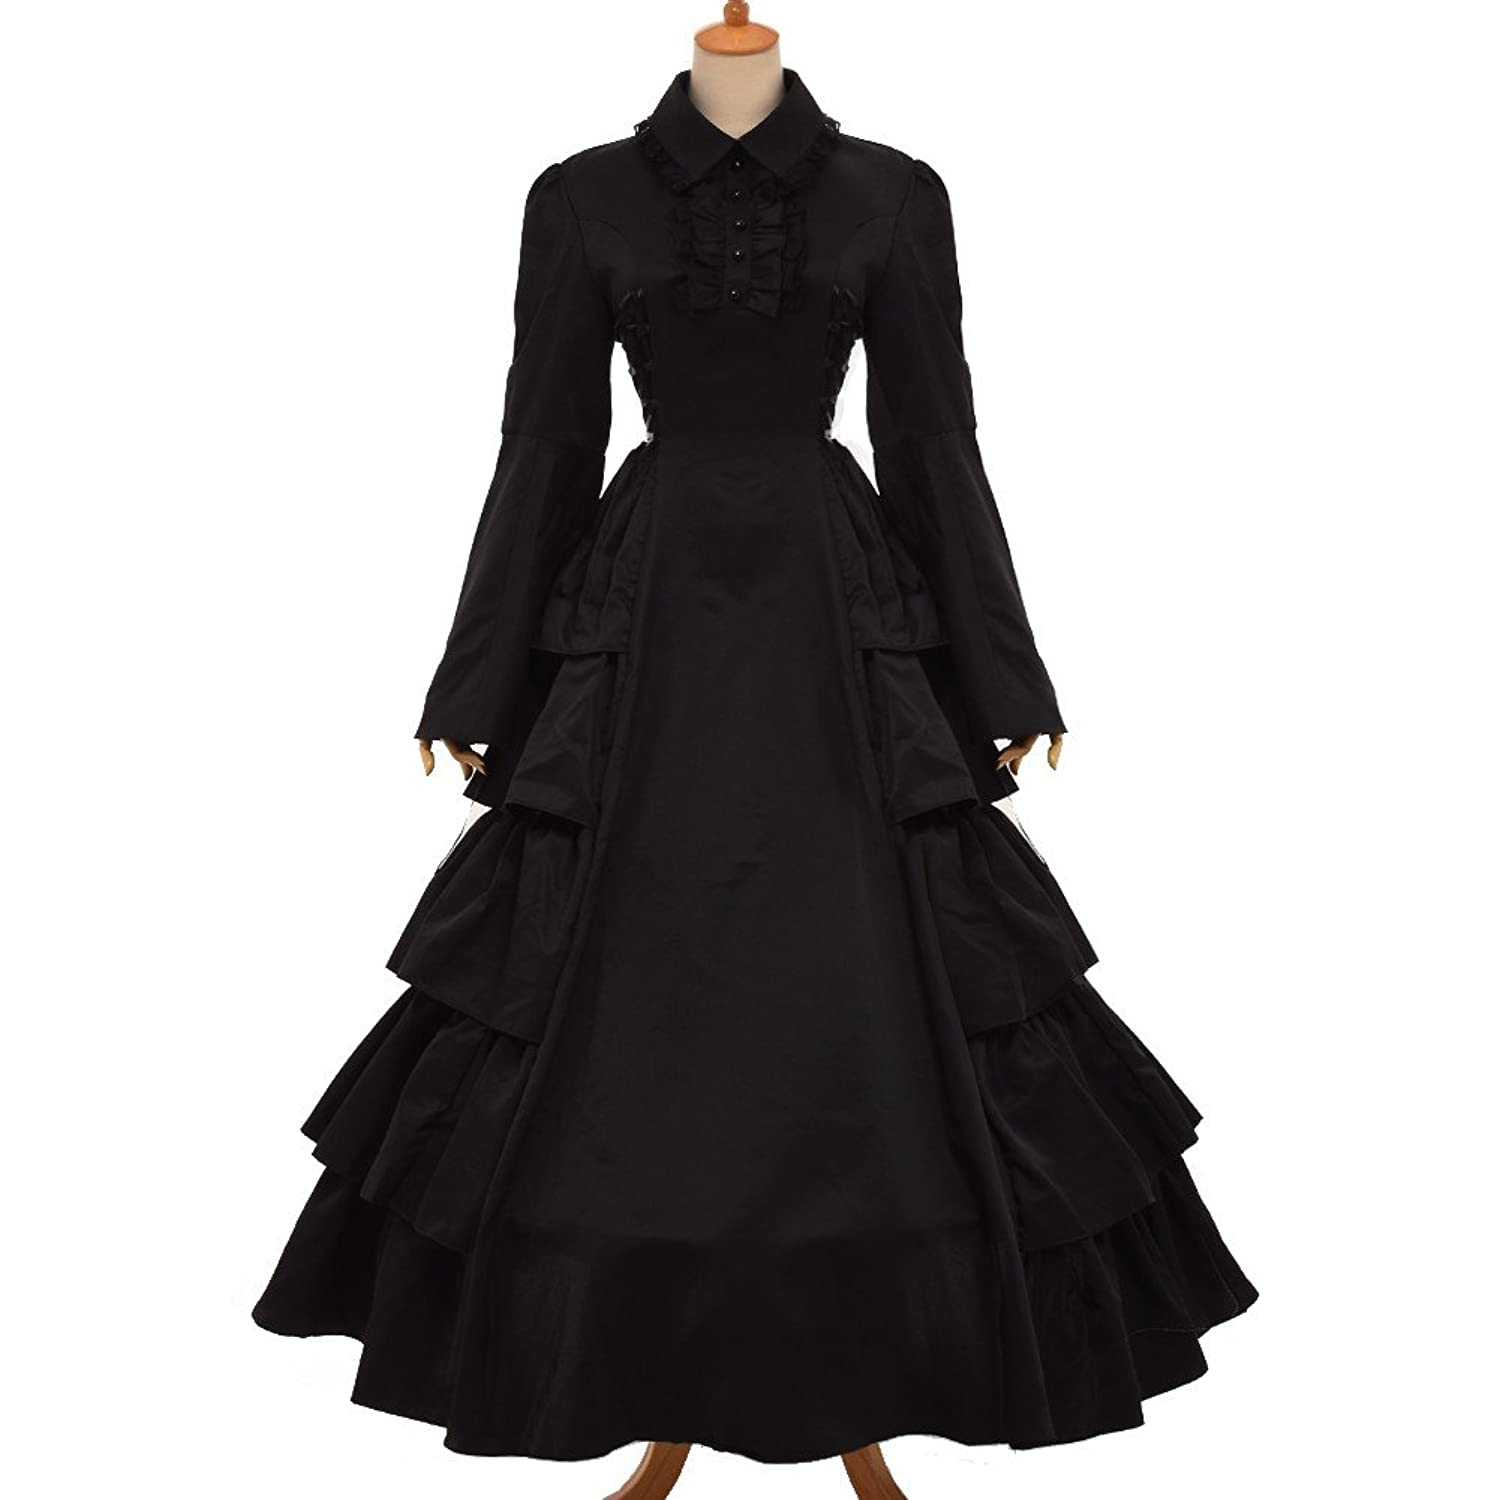 Victorian Costumes: Dresses, Saloon Girls, Southern Belle, Witch Victorian Gothic Ball Gown Dress Cosutume  AT vintagedancer.com